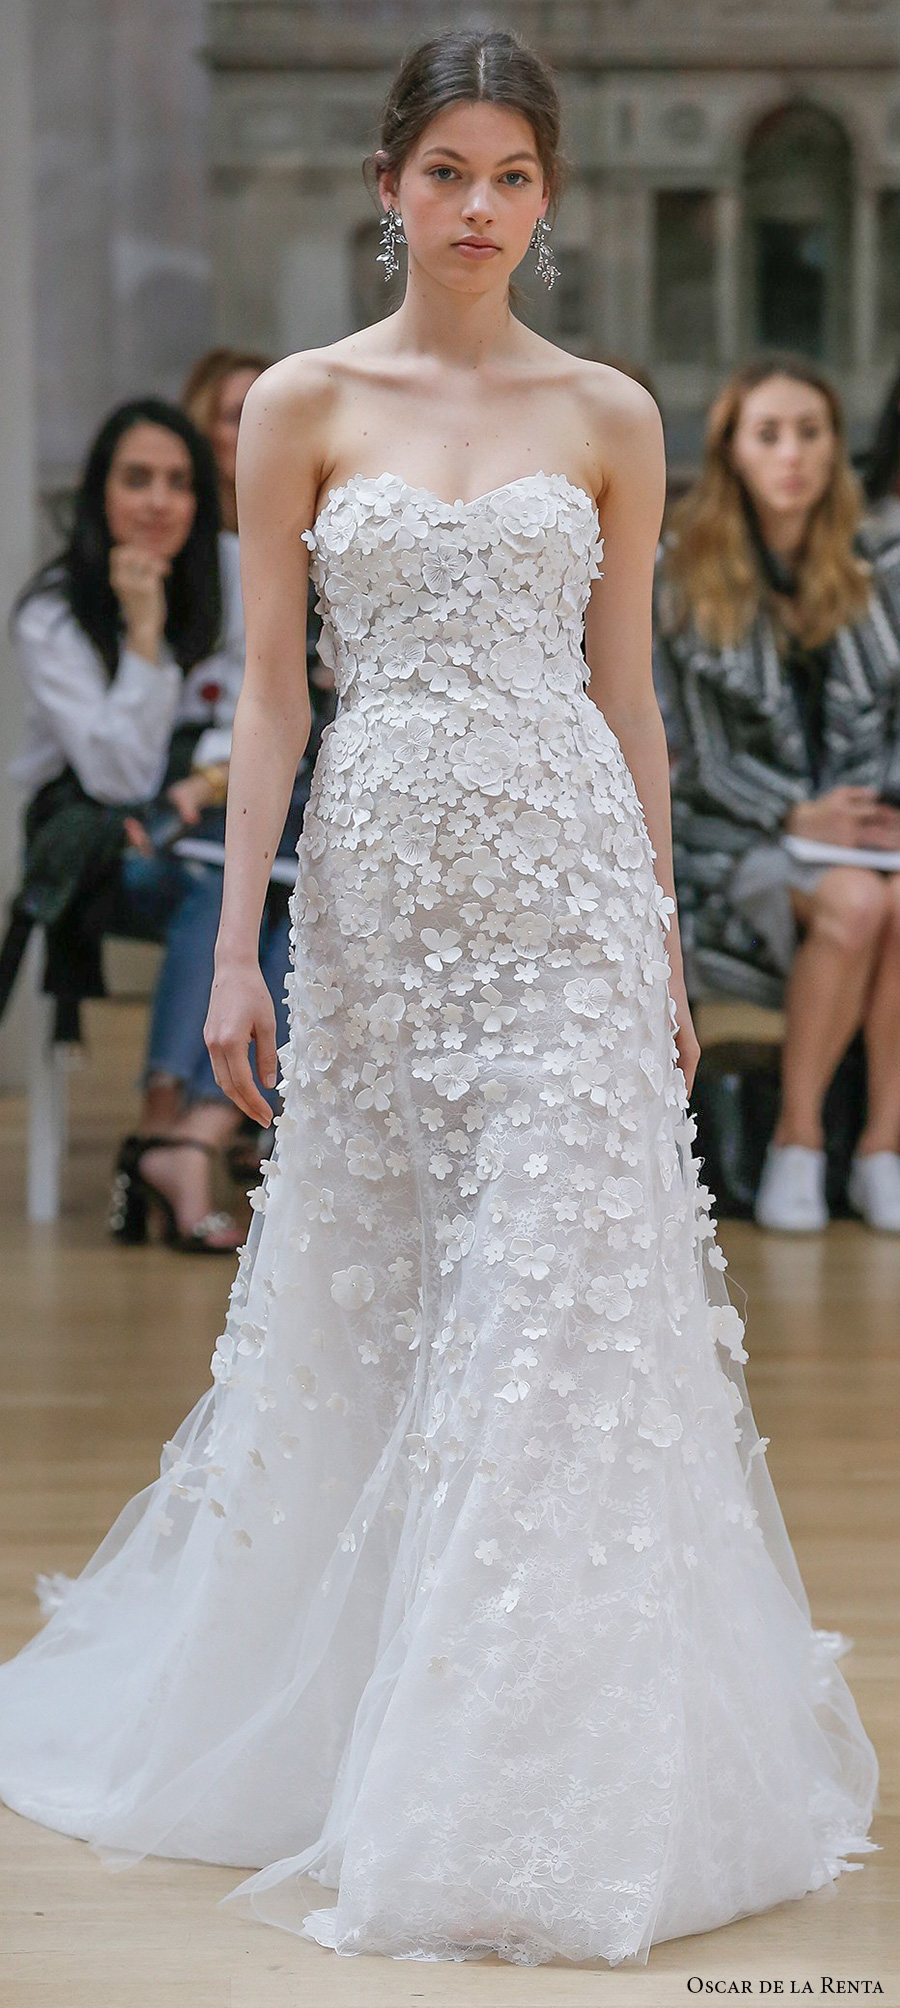 Oscar de la renta spring 2018 wedding dresses new york for Where to buy oscar de la renta wedding dress